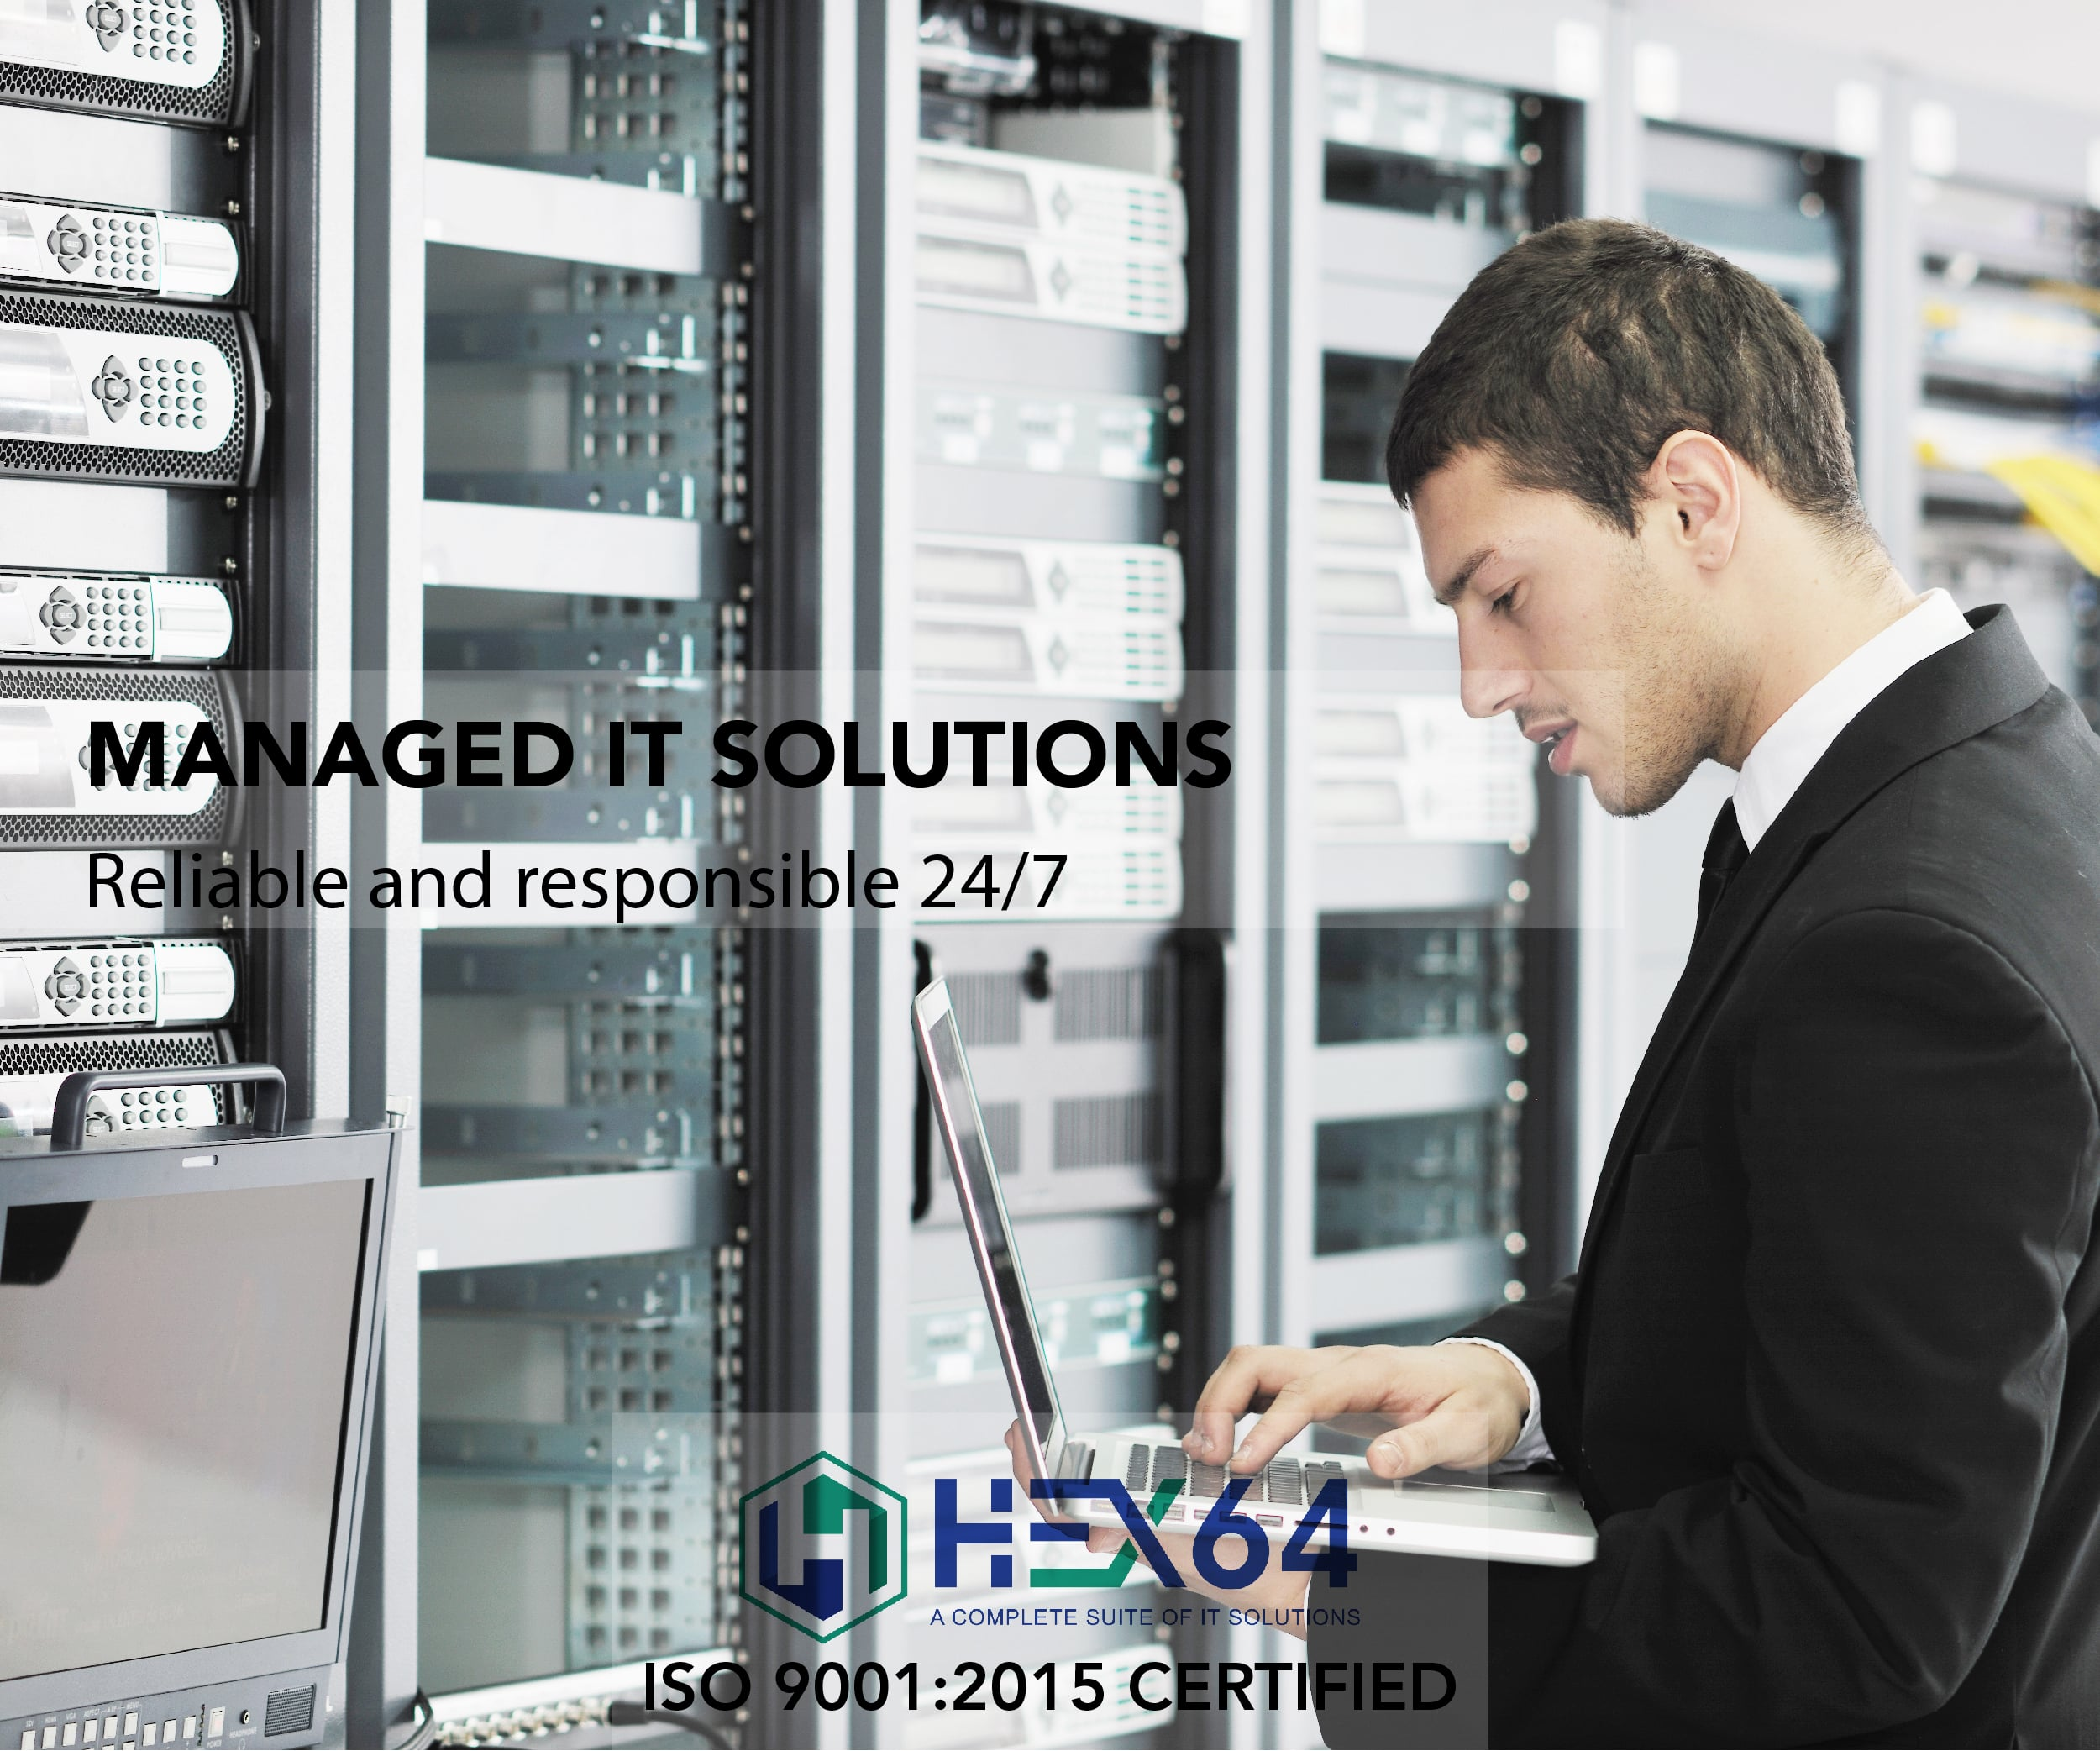 Managed IT Solution